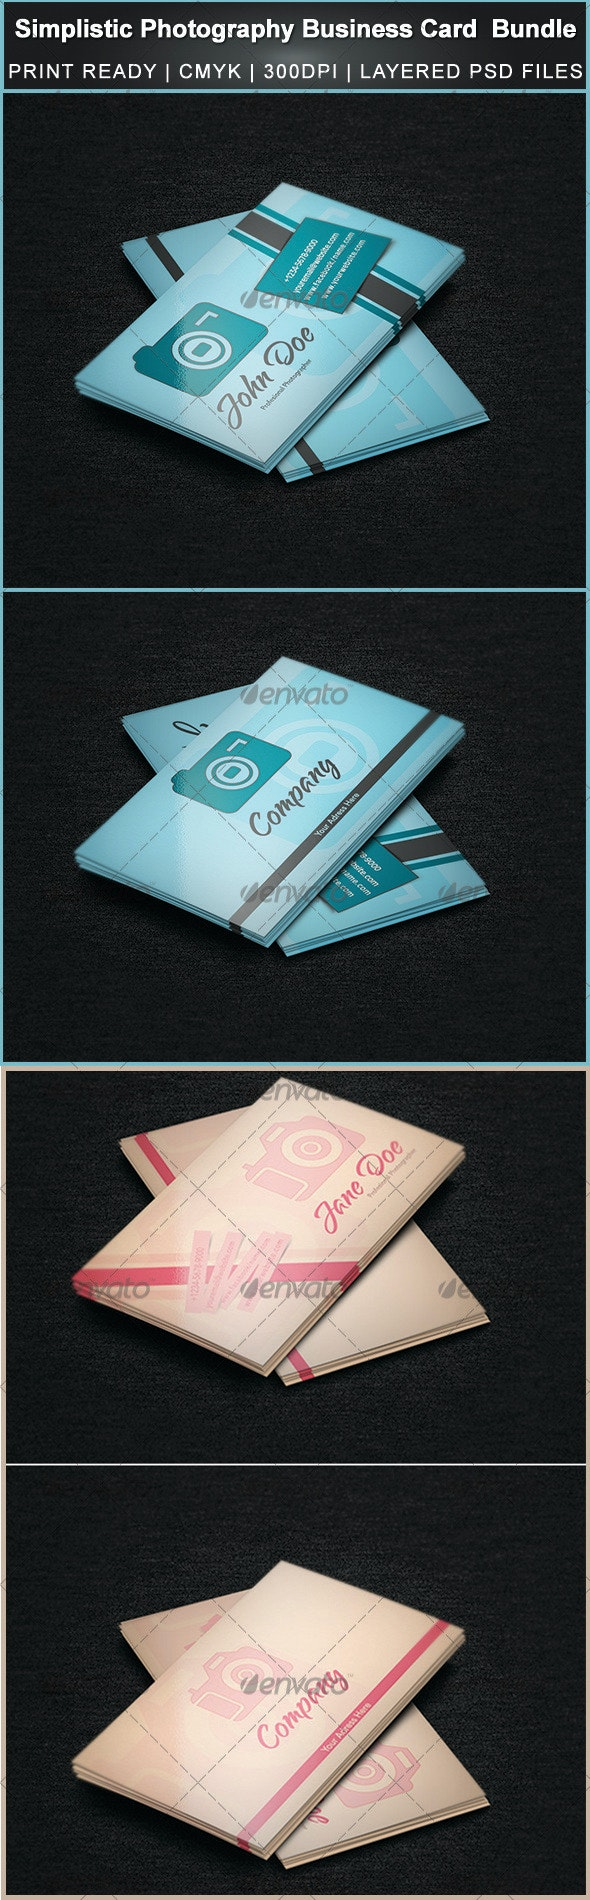 Simplistic Photography Business Card Bundle - Industry Specific Business Cards